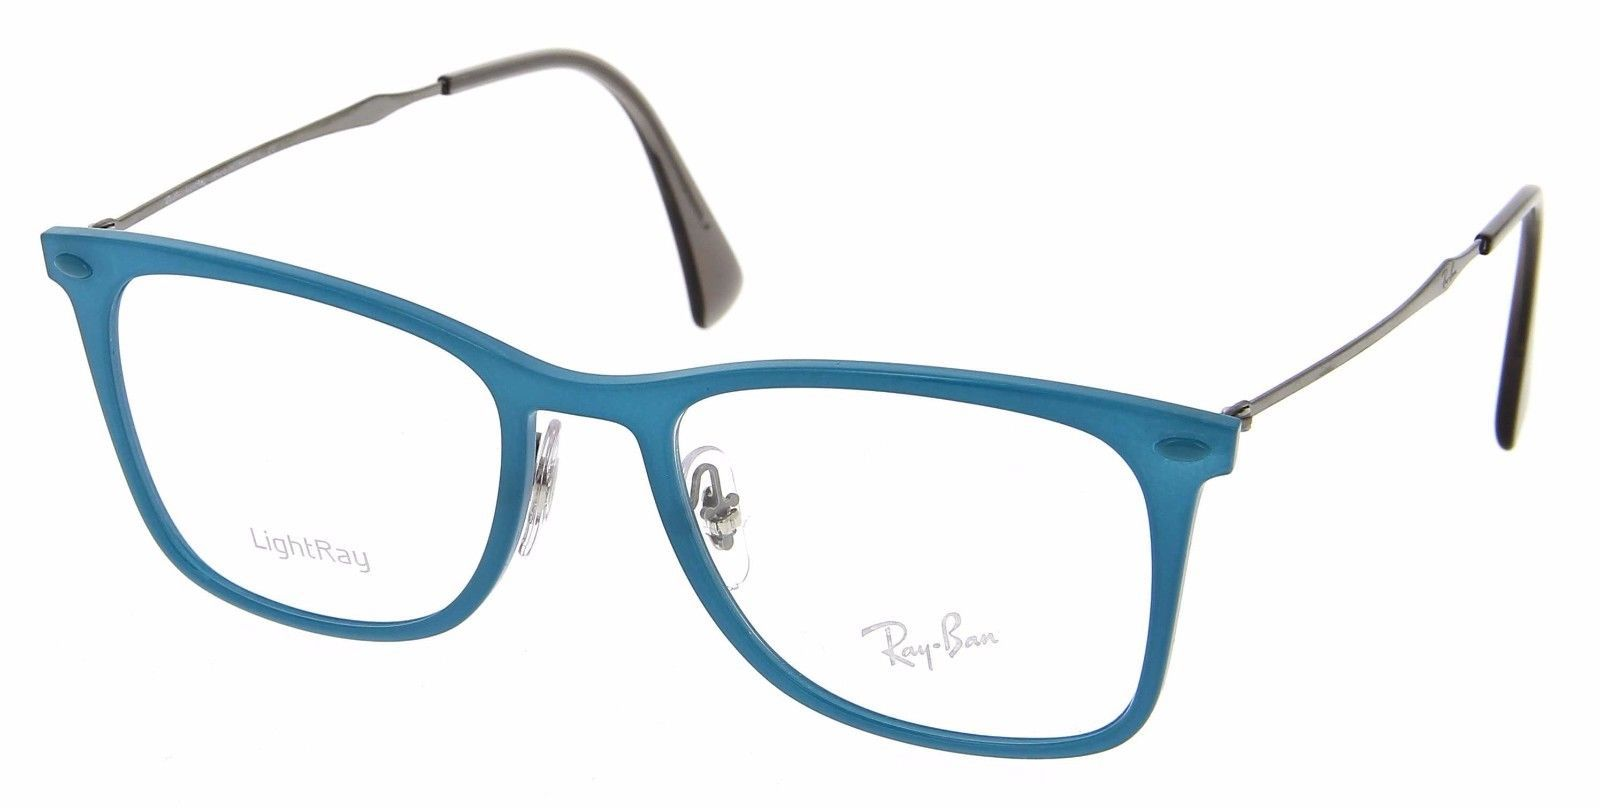 8df0787007 New RAY-BAN Rb 7086 5640 Blue Eyeglasses and 50 similar items. 57